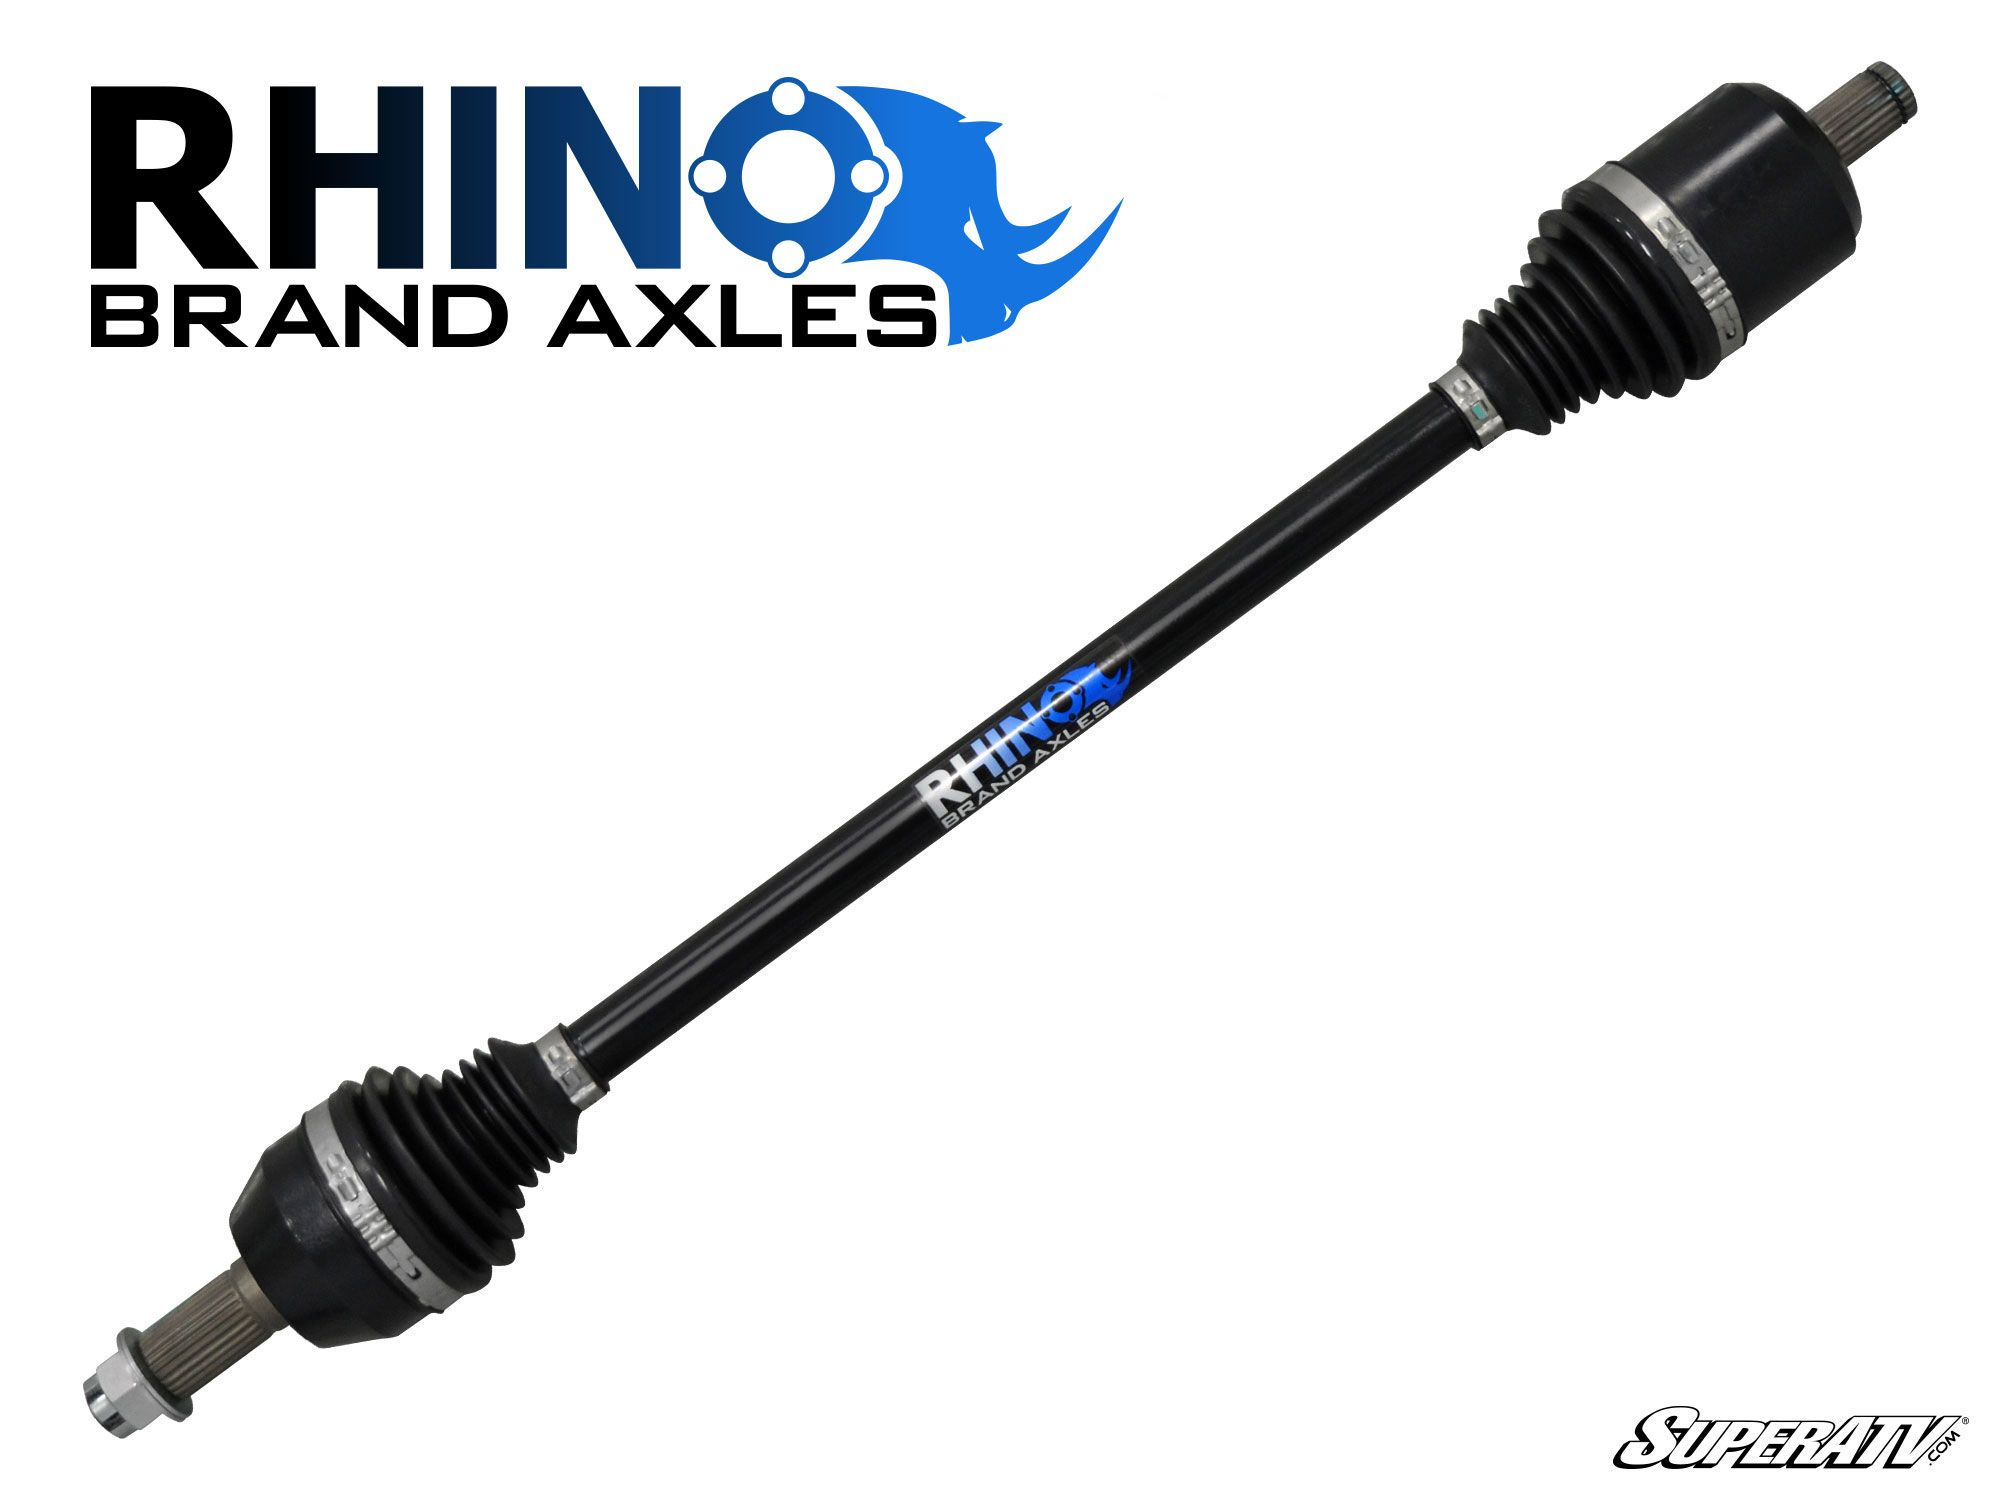 Polaris Ranger Fullsize 570/900 Axles -Rhino Brand -Heavy Duty